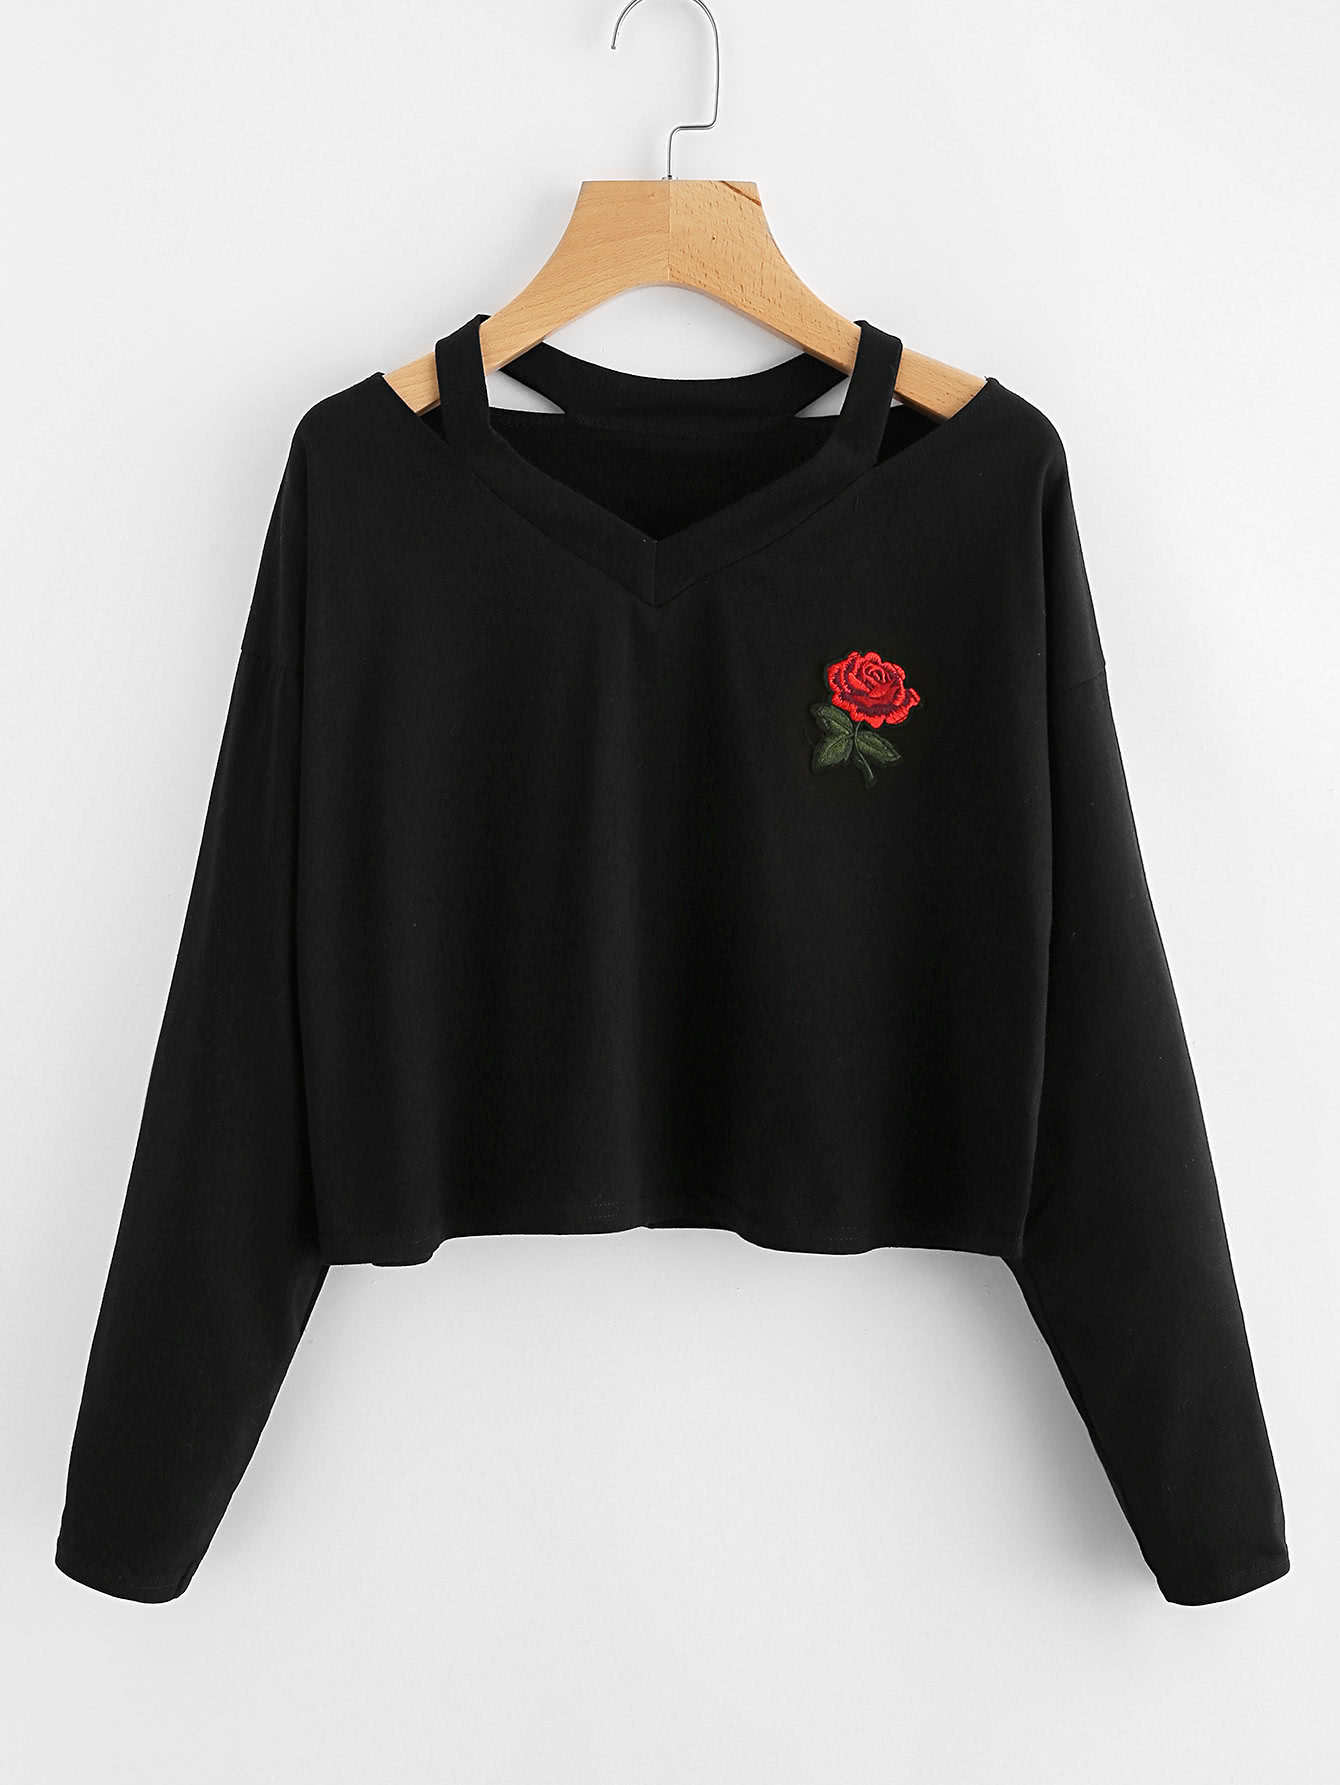 Cut Out Neck Rose Patch Tee cut out neck rose patch crop tee